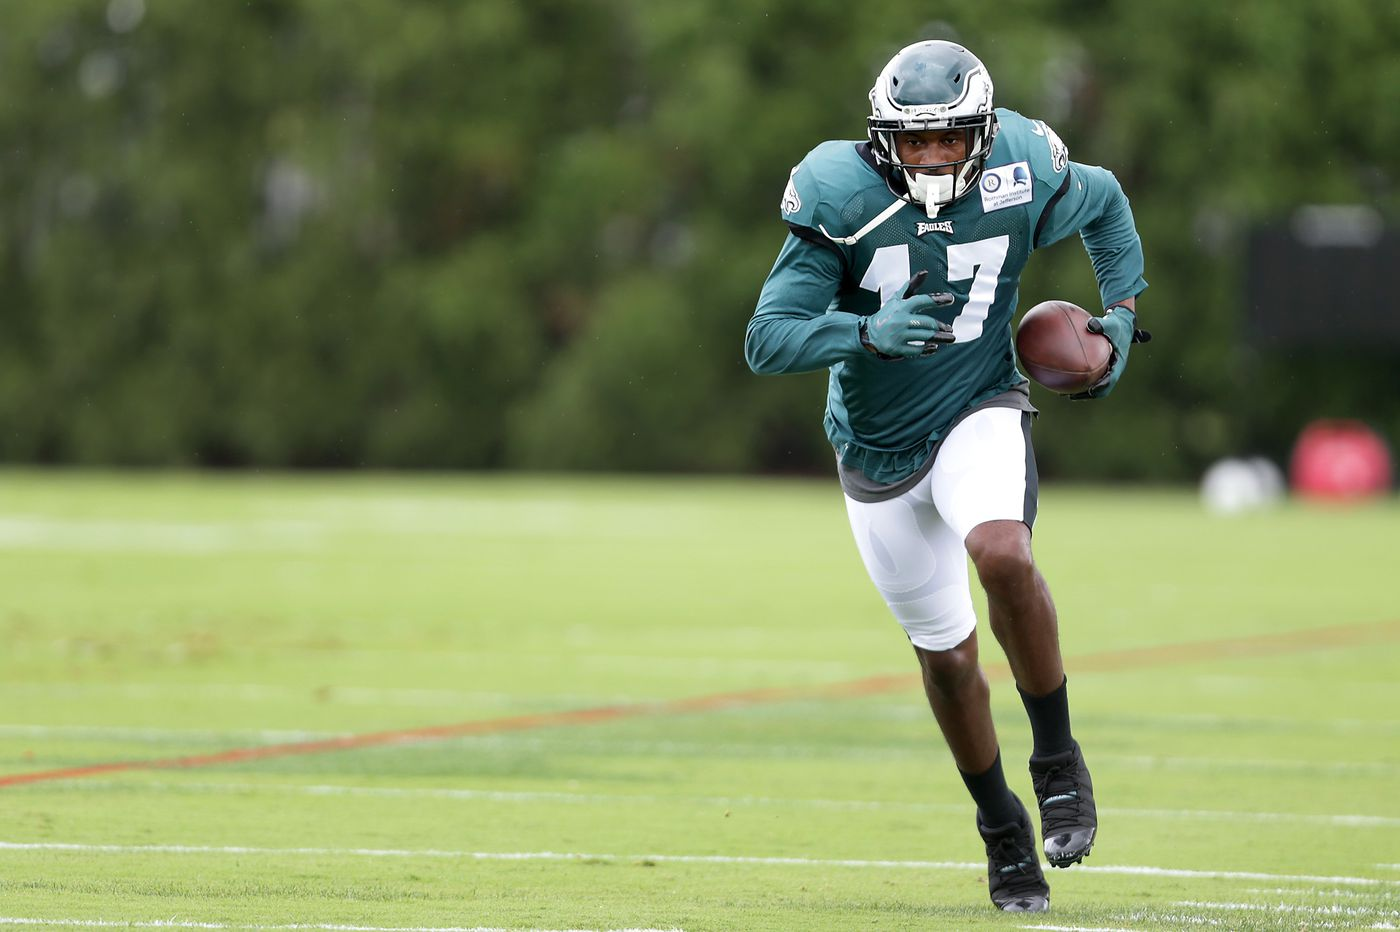 Eagles wide receiver Alshon Jeffery returns to practice on limited basis